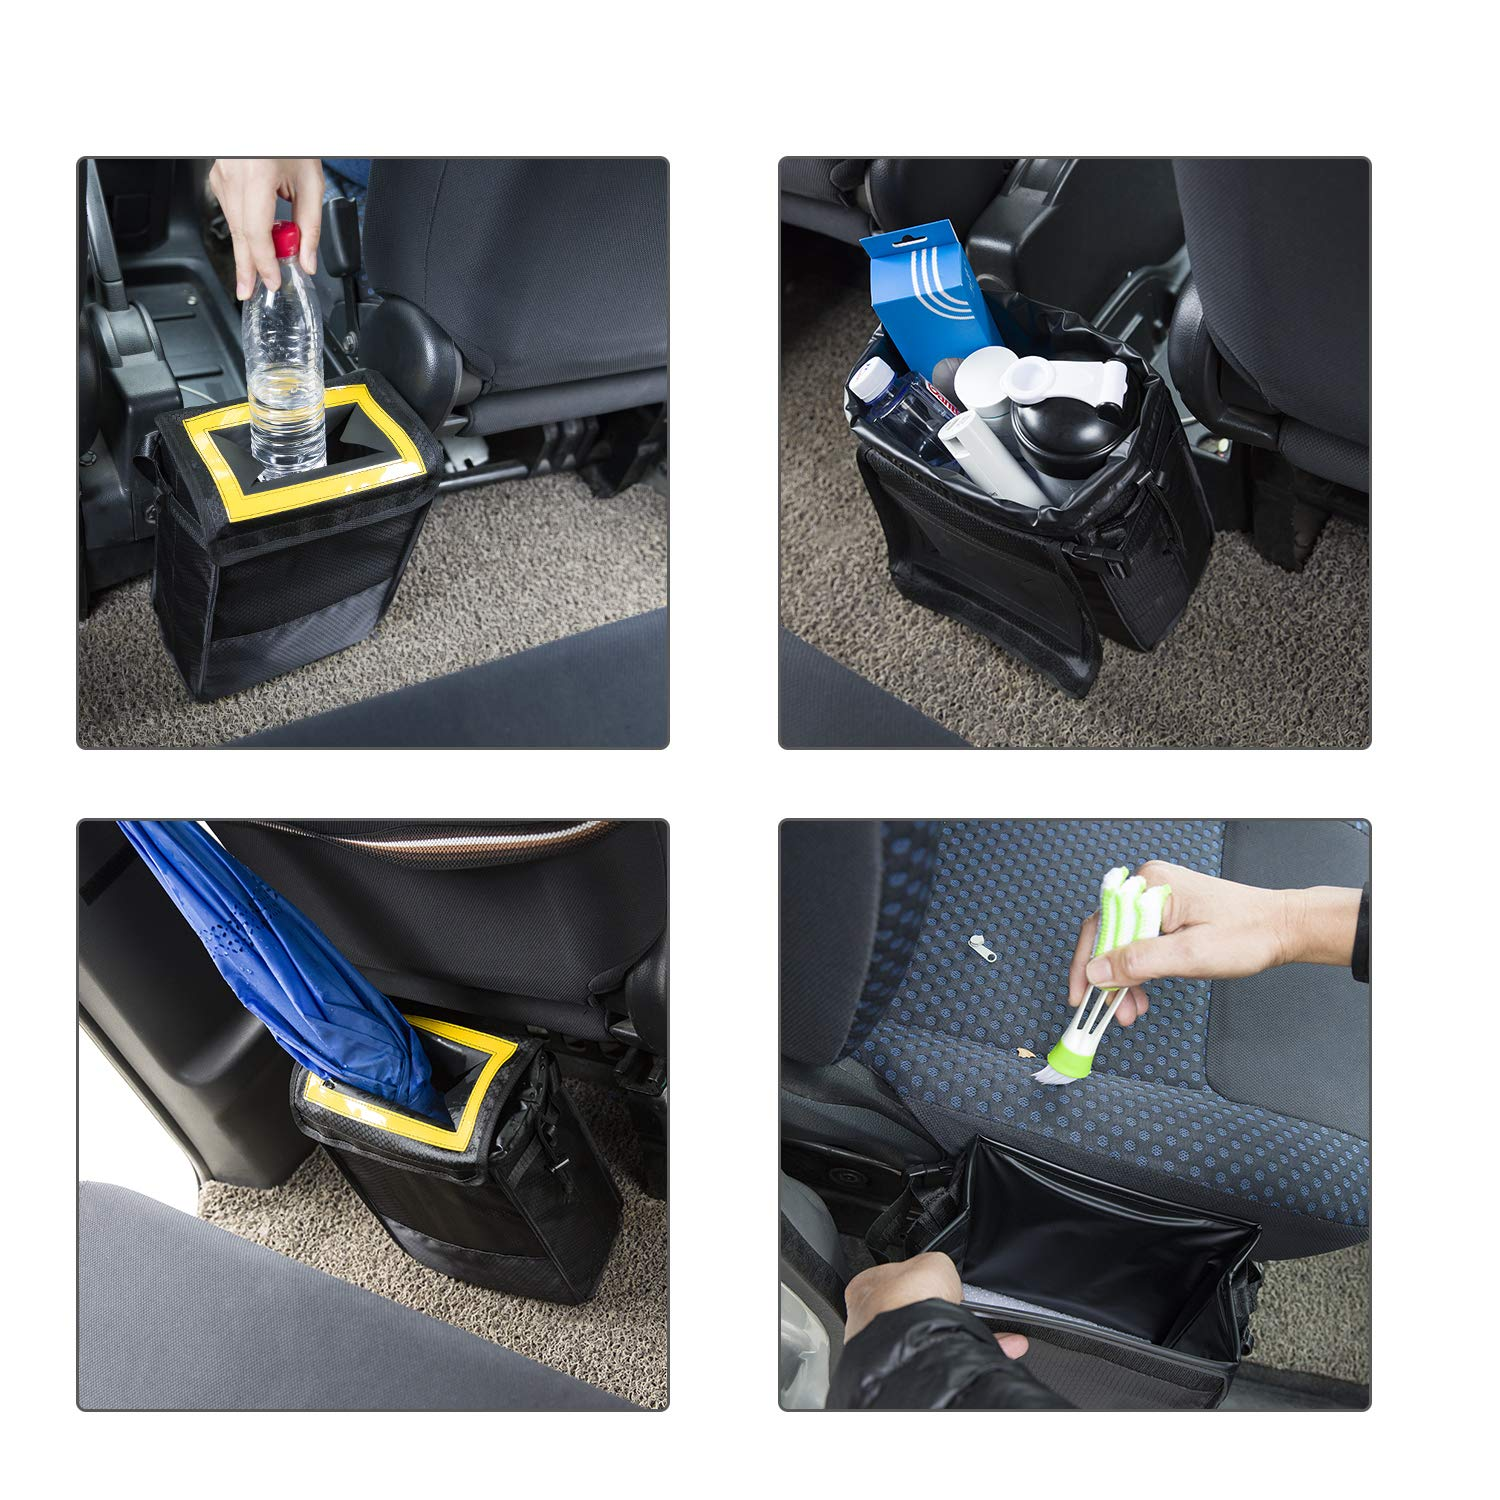 Sumworld Car Trash Can Hanging Automobile Garbage Bag with Lid and Storage Pockets Automotive Litter Container for Vehicle Headrest Gearshift Center Console